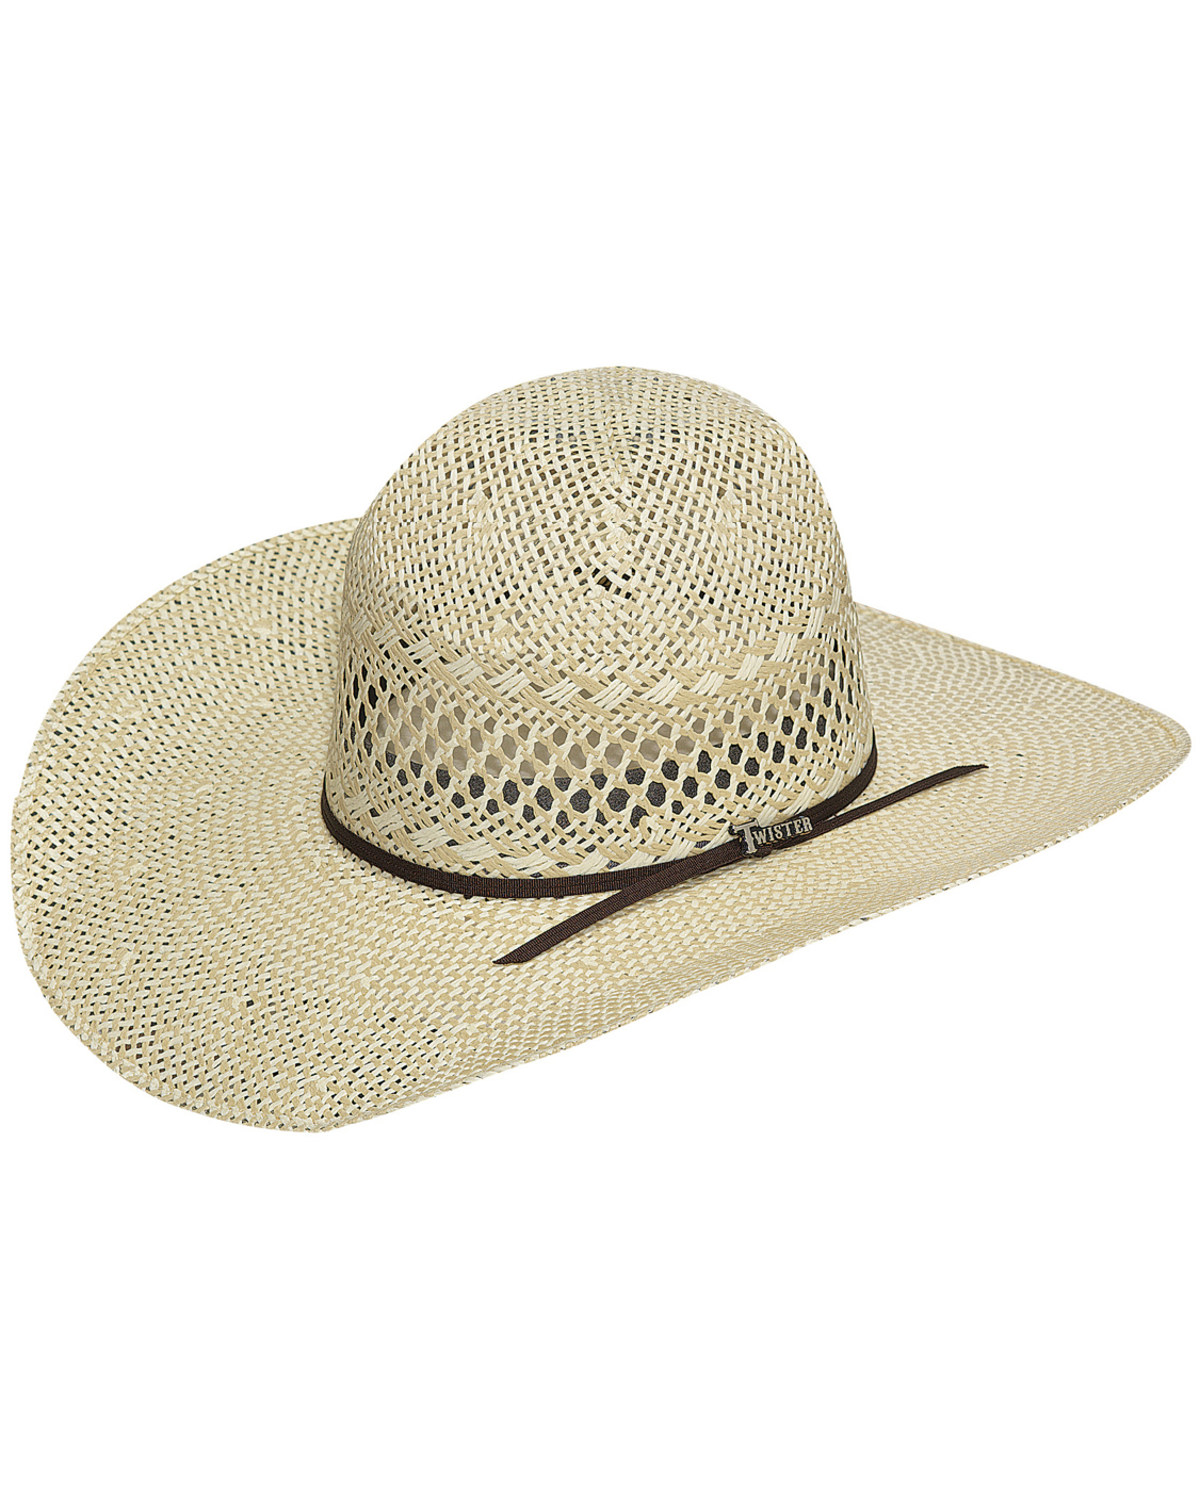 Twister Men s Twisted Weave Straw Cowboy Hat  78a62ada0e1f